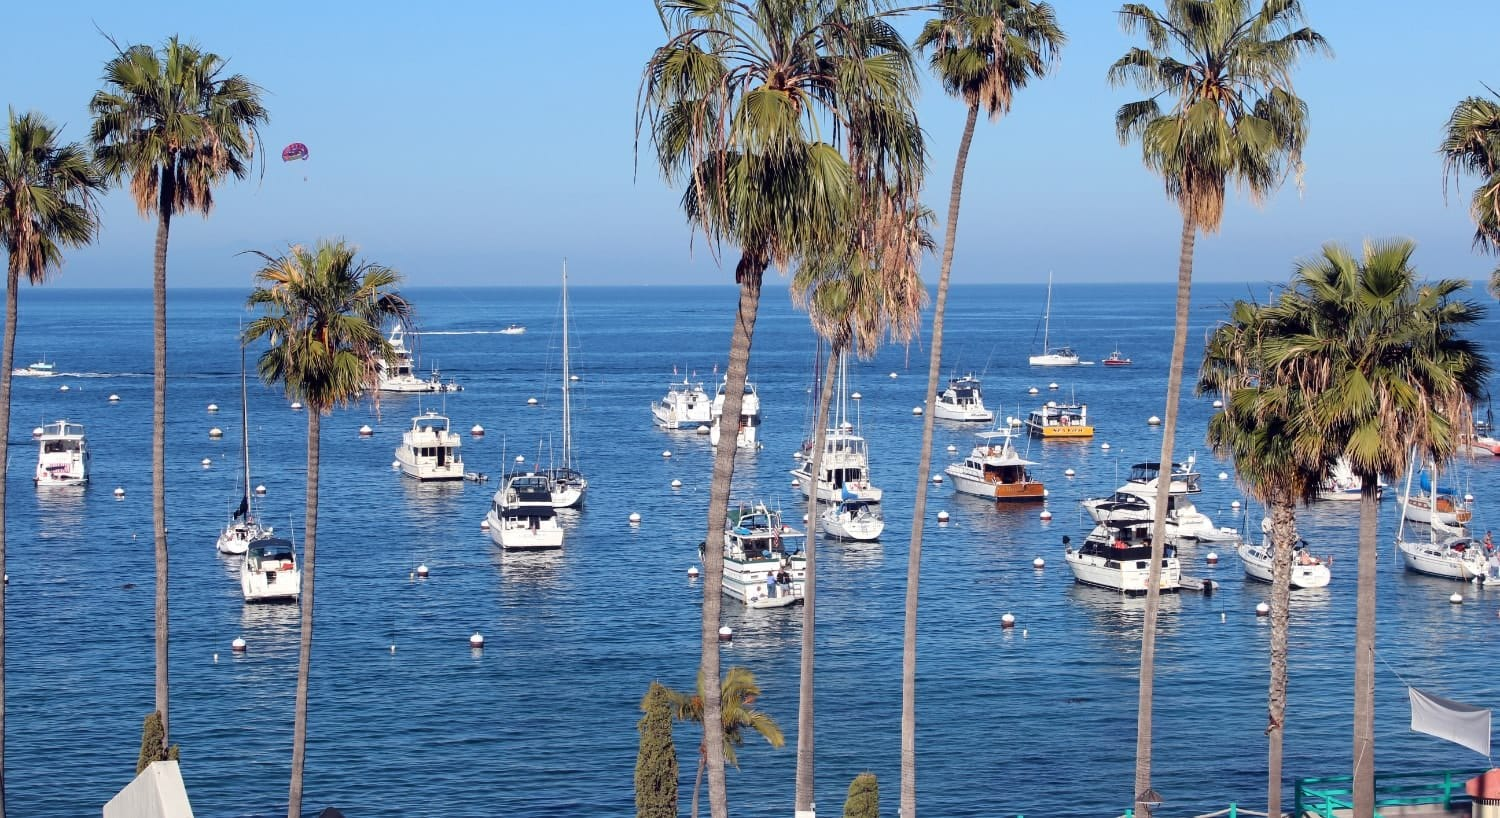 View of ocean marina filled with boats and palm trees along the shore